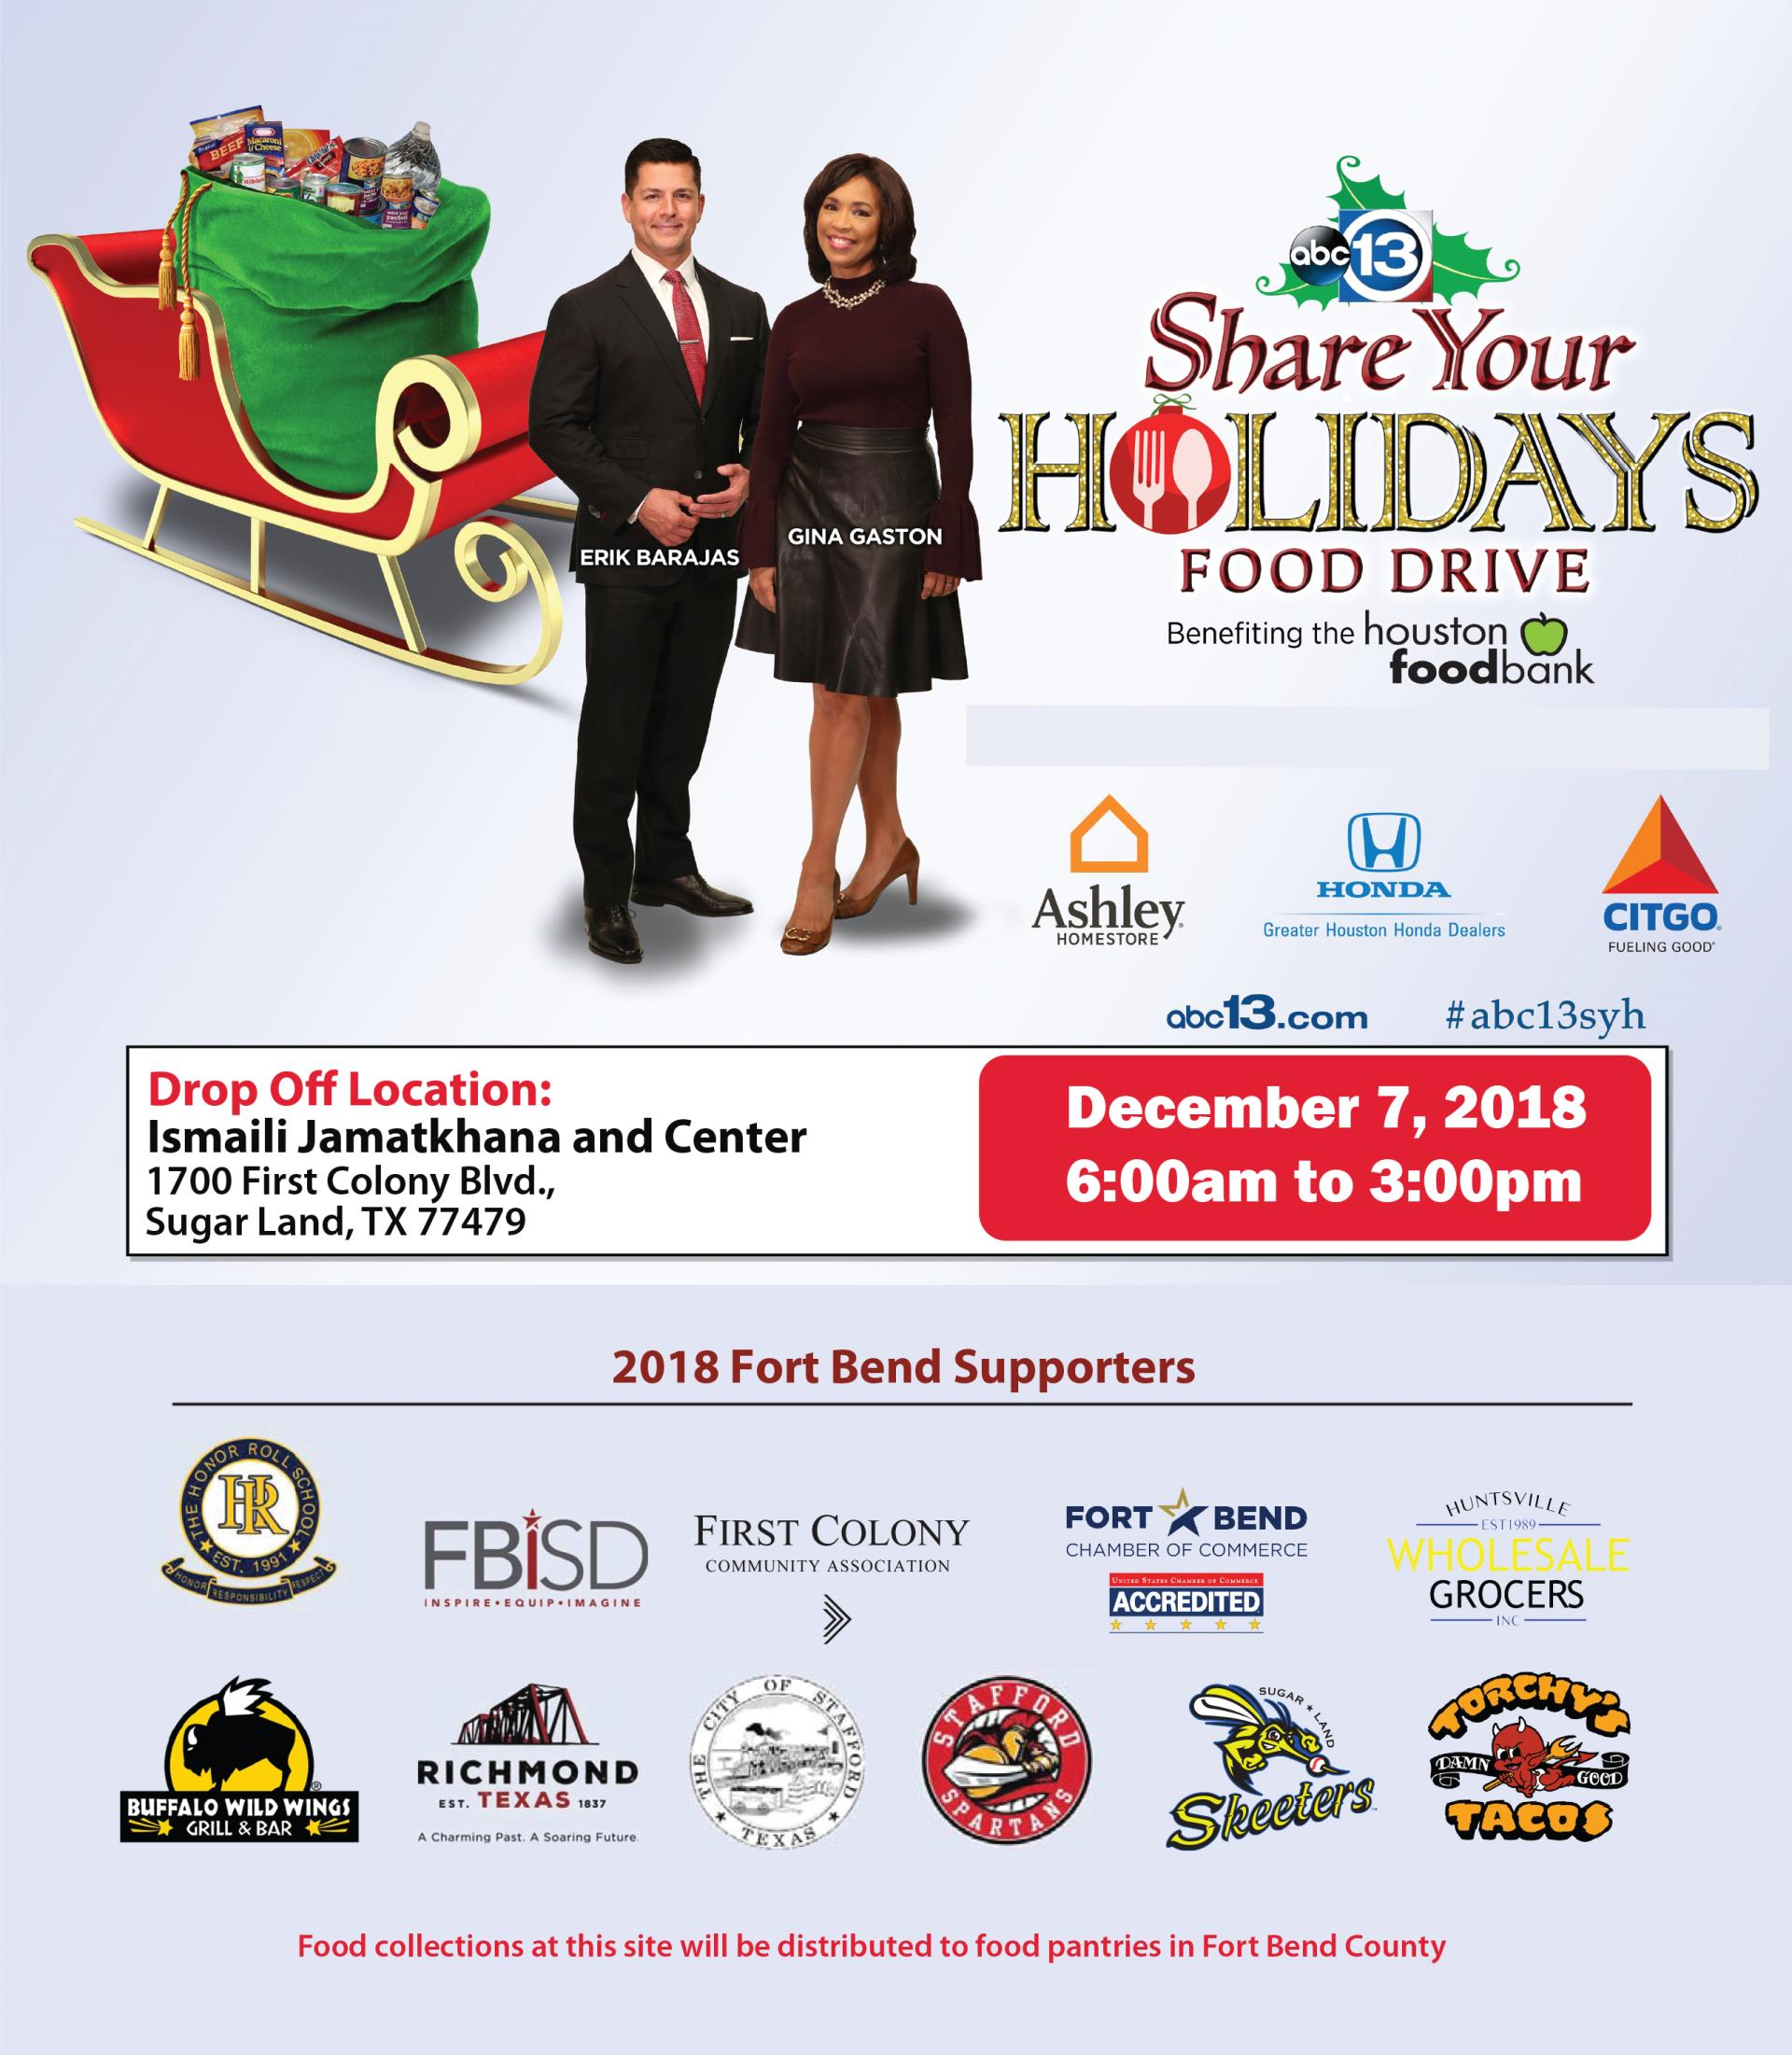 Share Your Holidays Food Drive Partners 2018